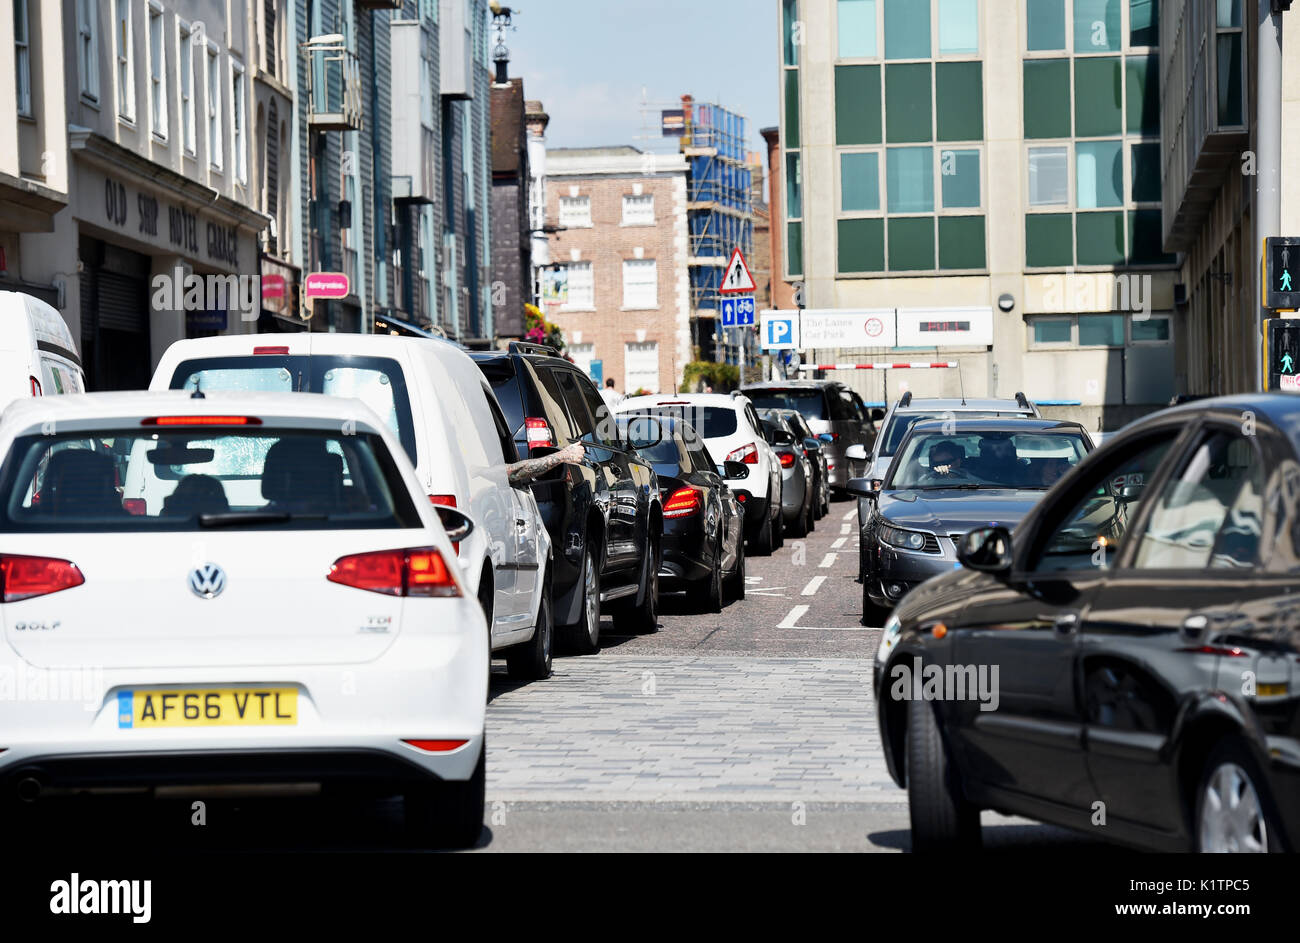 Brighton UK 27th August 2017 - Traffic congestion on Brighton seafront as crowds queue to get into the city car parks on a hot sunny day as temperatures are expected to reach as high as 28 degrees over the bank weekend which is a record for August Photograph taken by Simon Dack - Stock Image